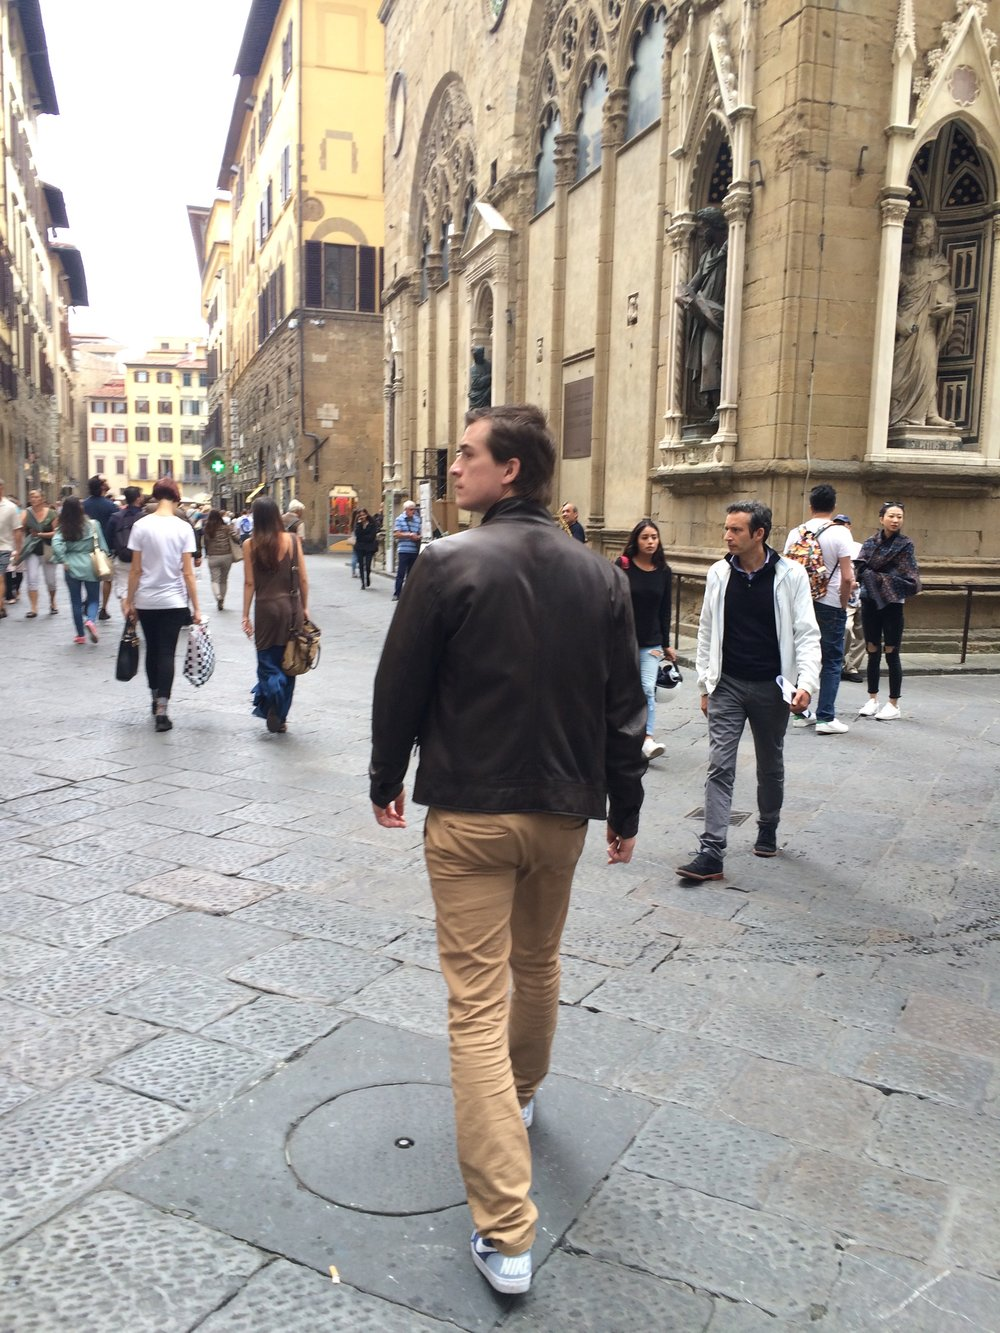 My awful attempt at being fashionable after purchasing a leather jacket.  Florence, Italy - 2015